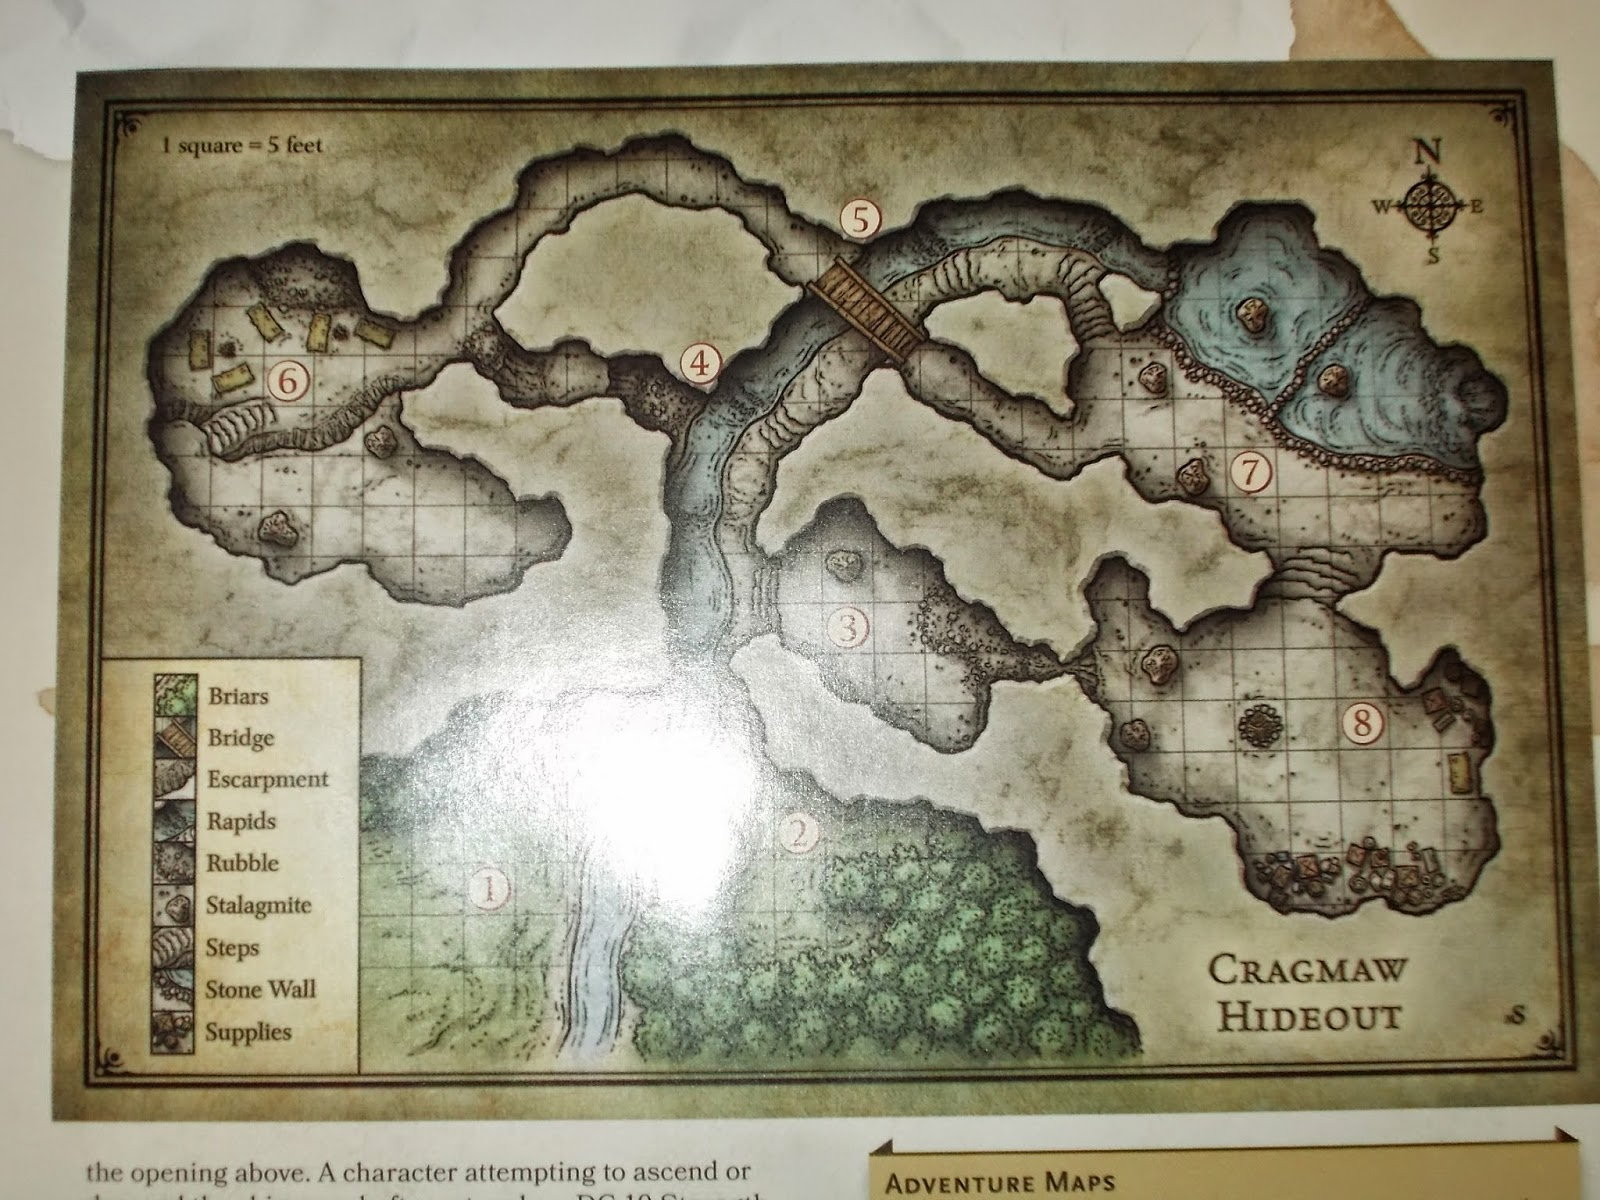 graphic regarding Cragmaw Hideout Printable Map known as The Ghost without the need of a S: August 2014